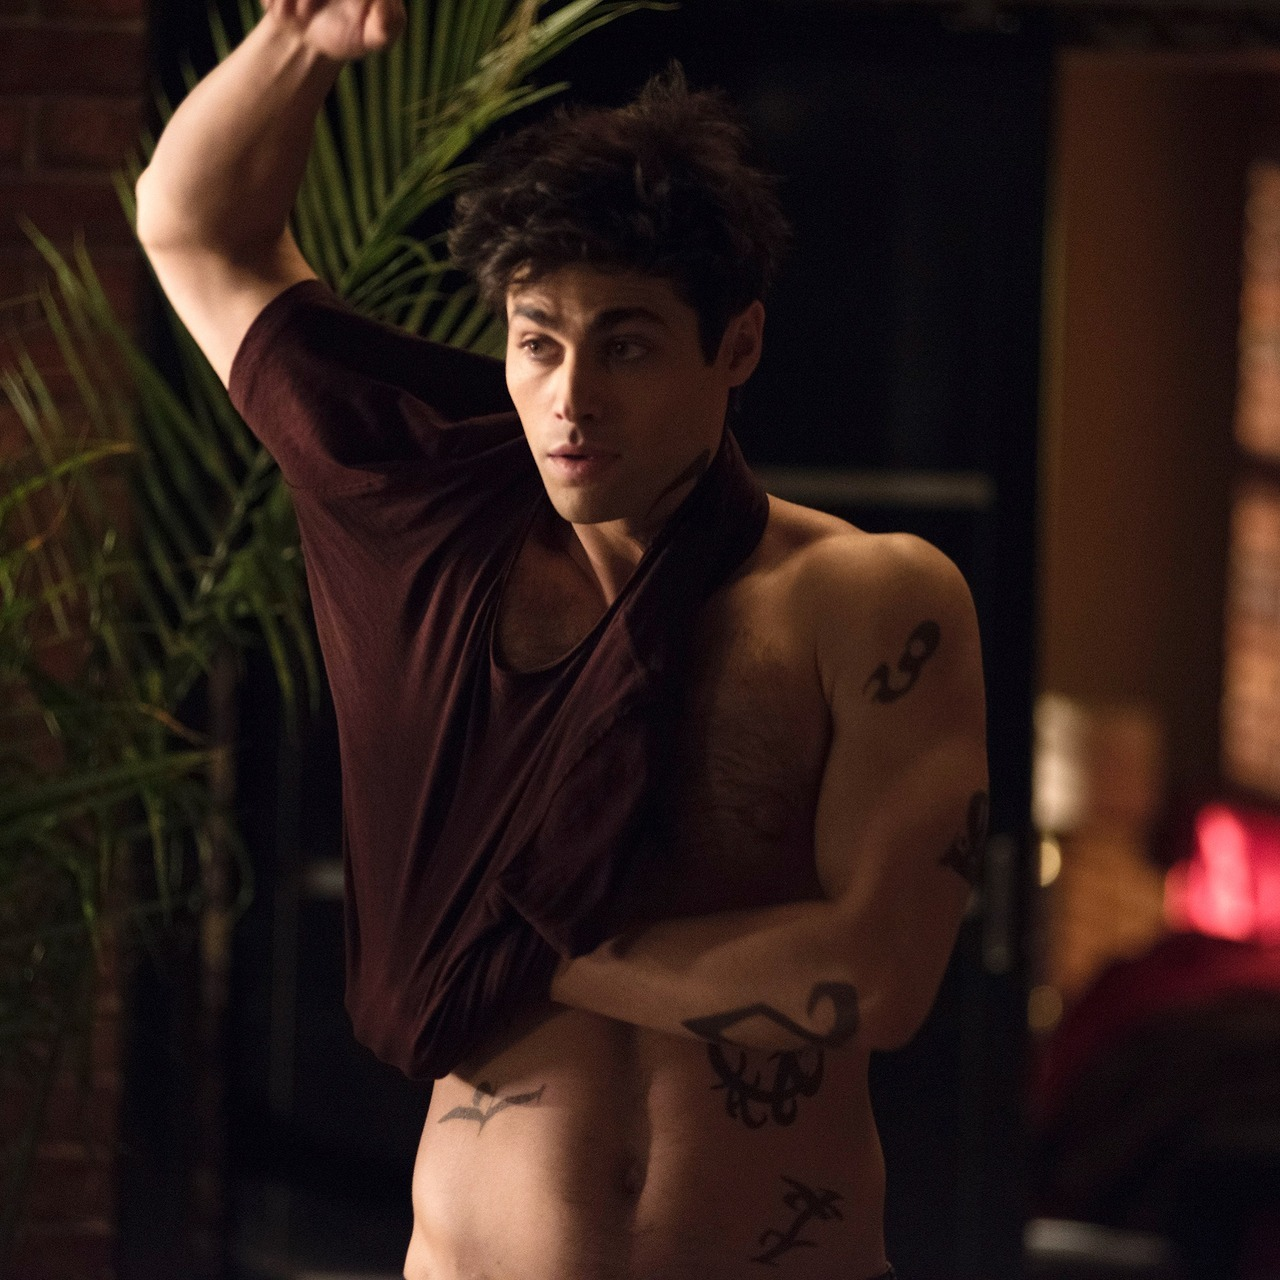 It's okay, Alec. You don't have to put on a shirt for us. _ _ _ Sneak peek photo from Monday's all new episode of Shadowhunters.